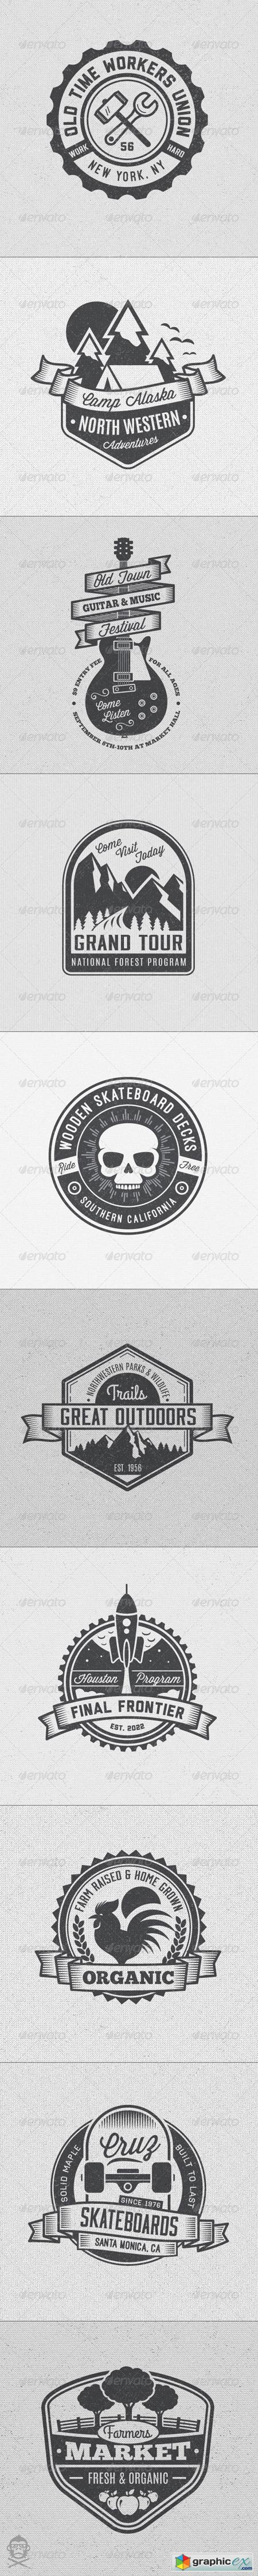 Vintage Style Badges and Logos Vol 4 8594929